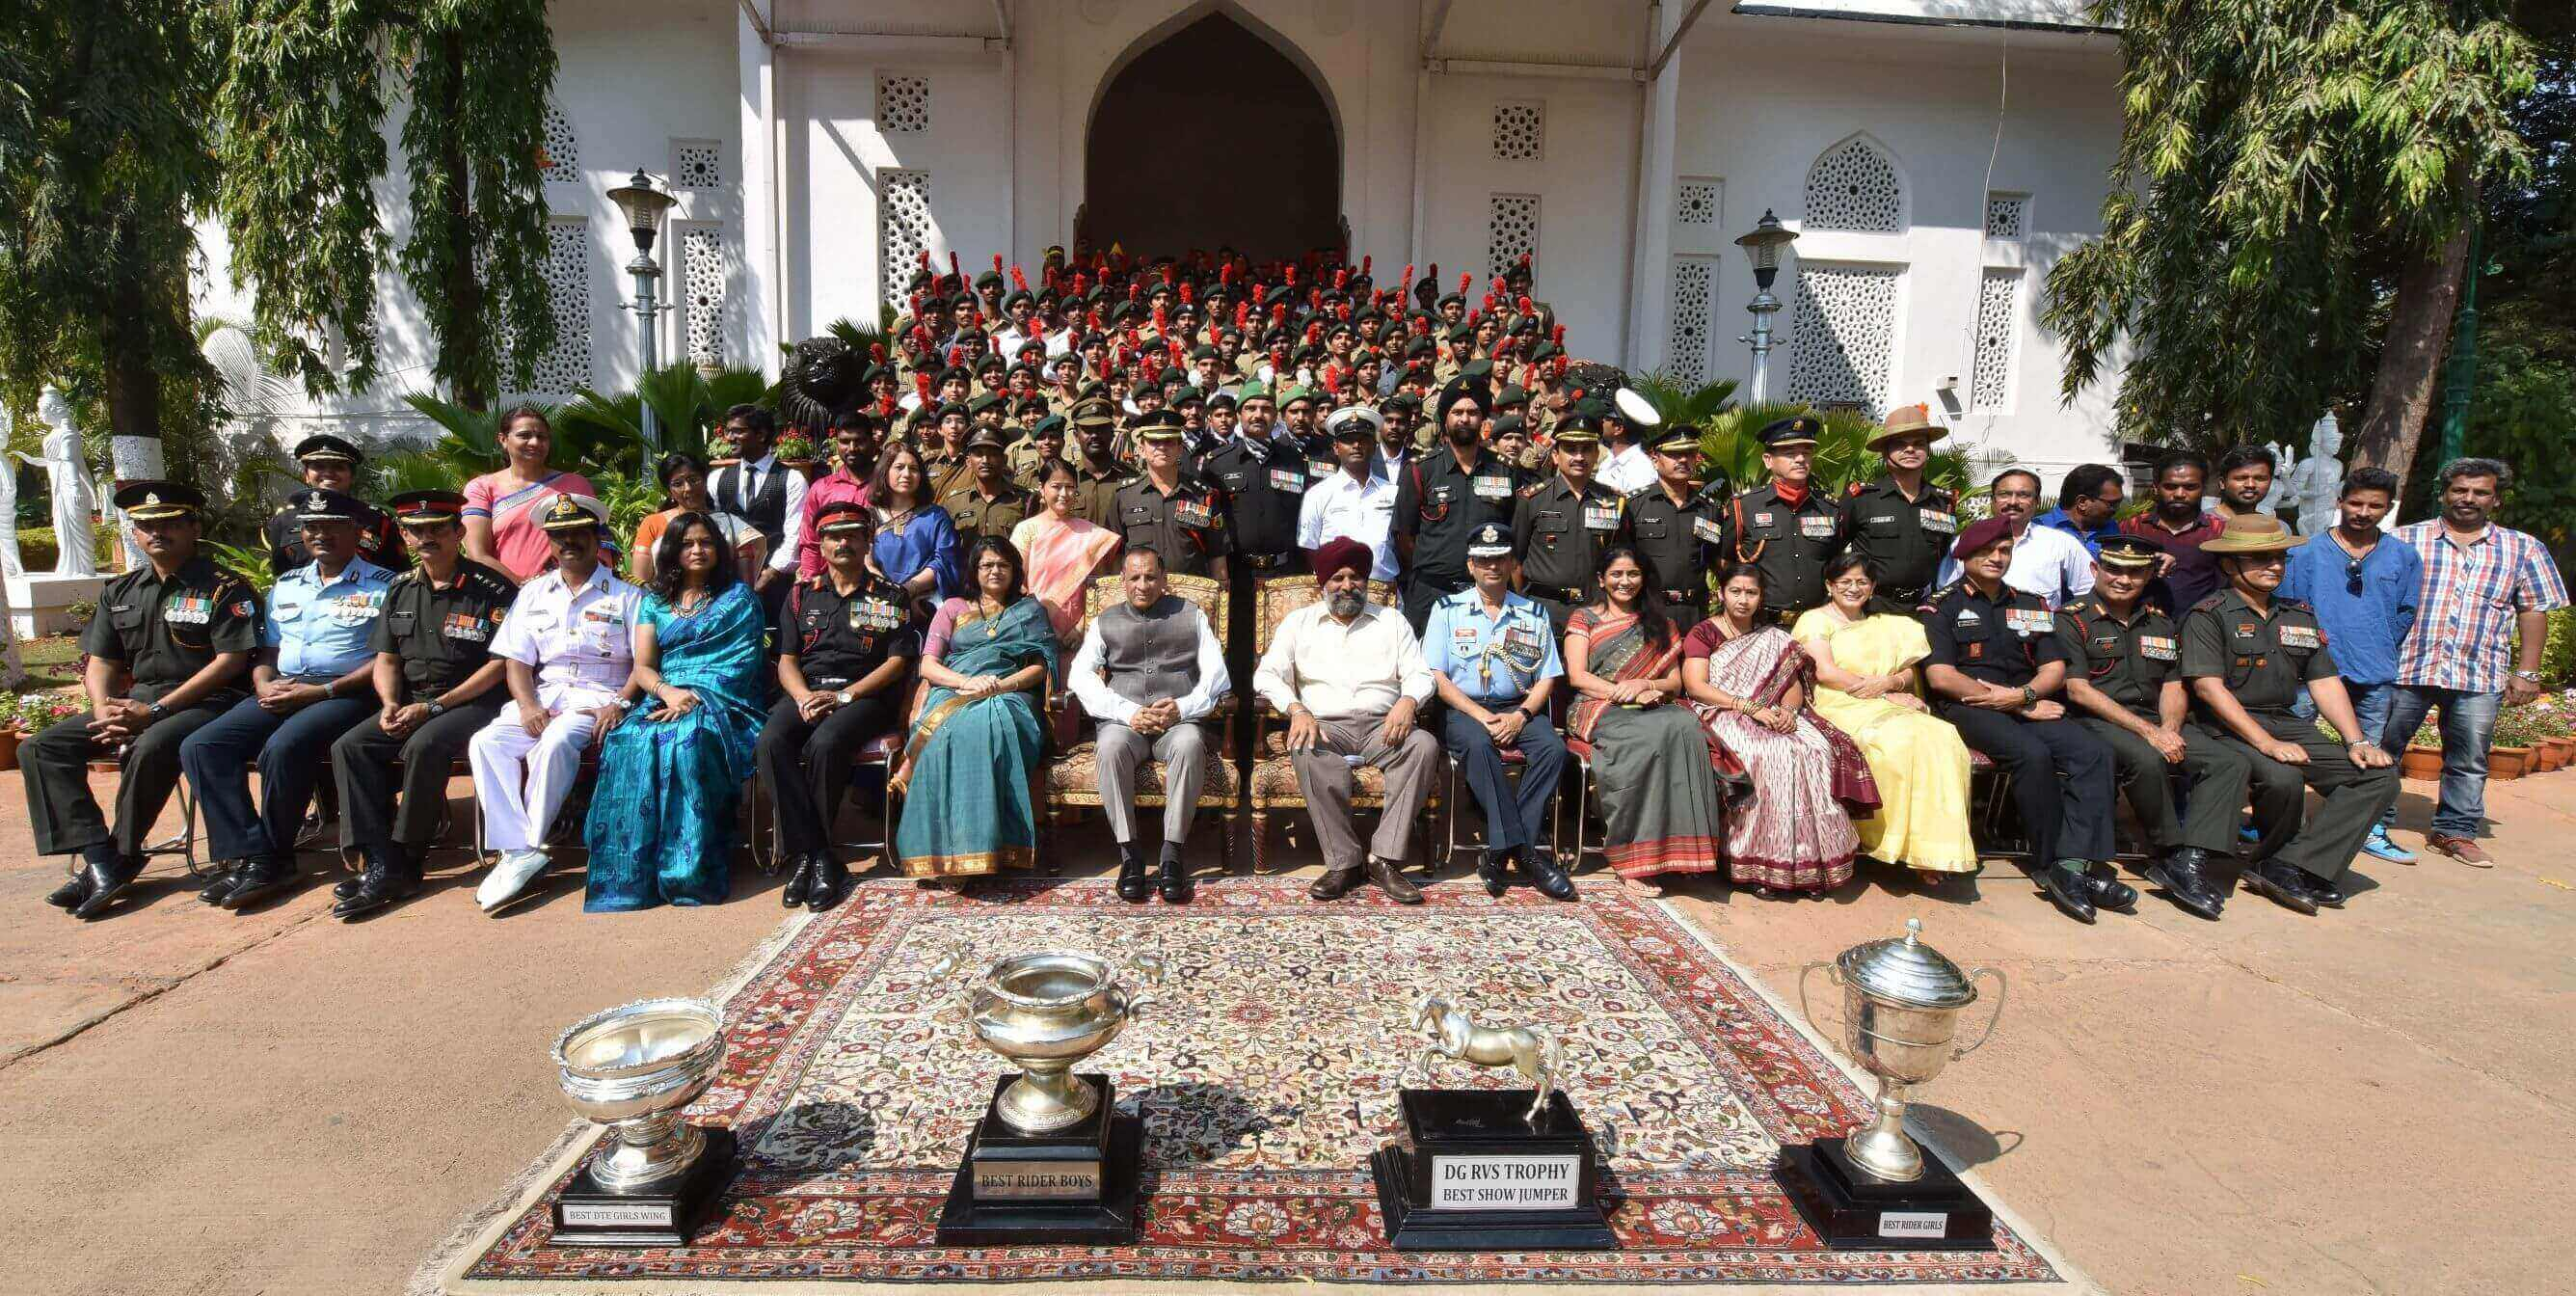 Governor ESL Narasimhan Participated In The 'At Home' Organized At Raj Bhavan To Felicitate NCC Cadets Who Participated In The Republic Day Camp 2017 Held At New Delhi, And Presented Medals To Winning Cadets. NCC Cadets Presented Cultural Dance Programmes On The Occasion.